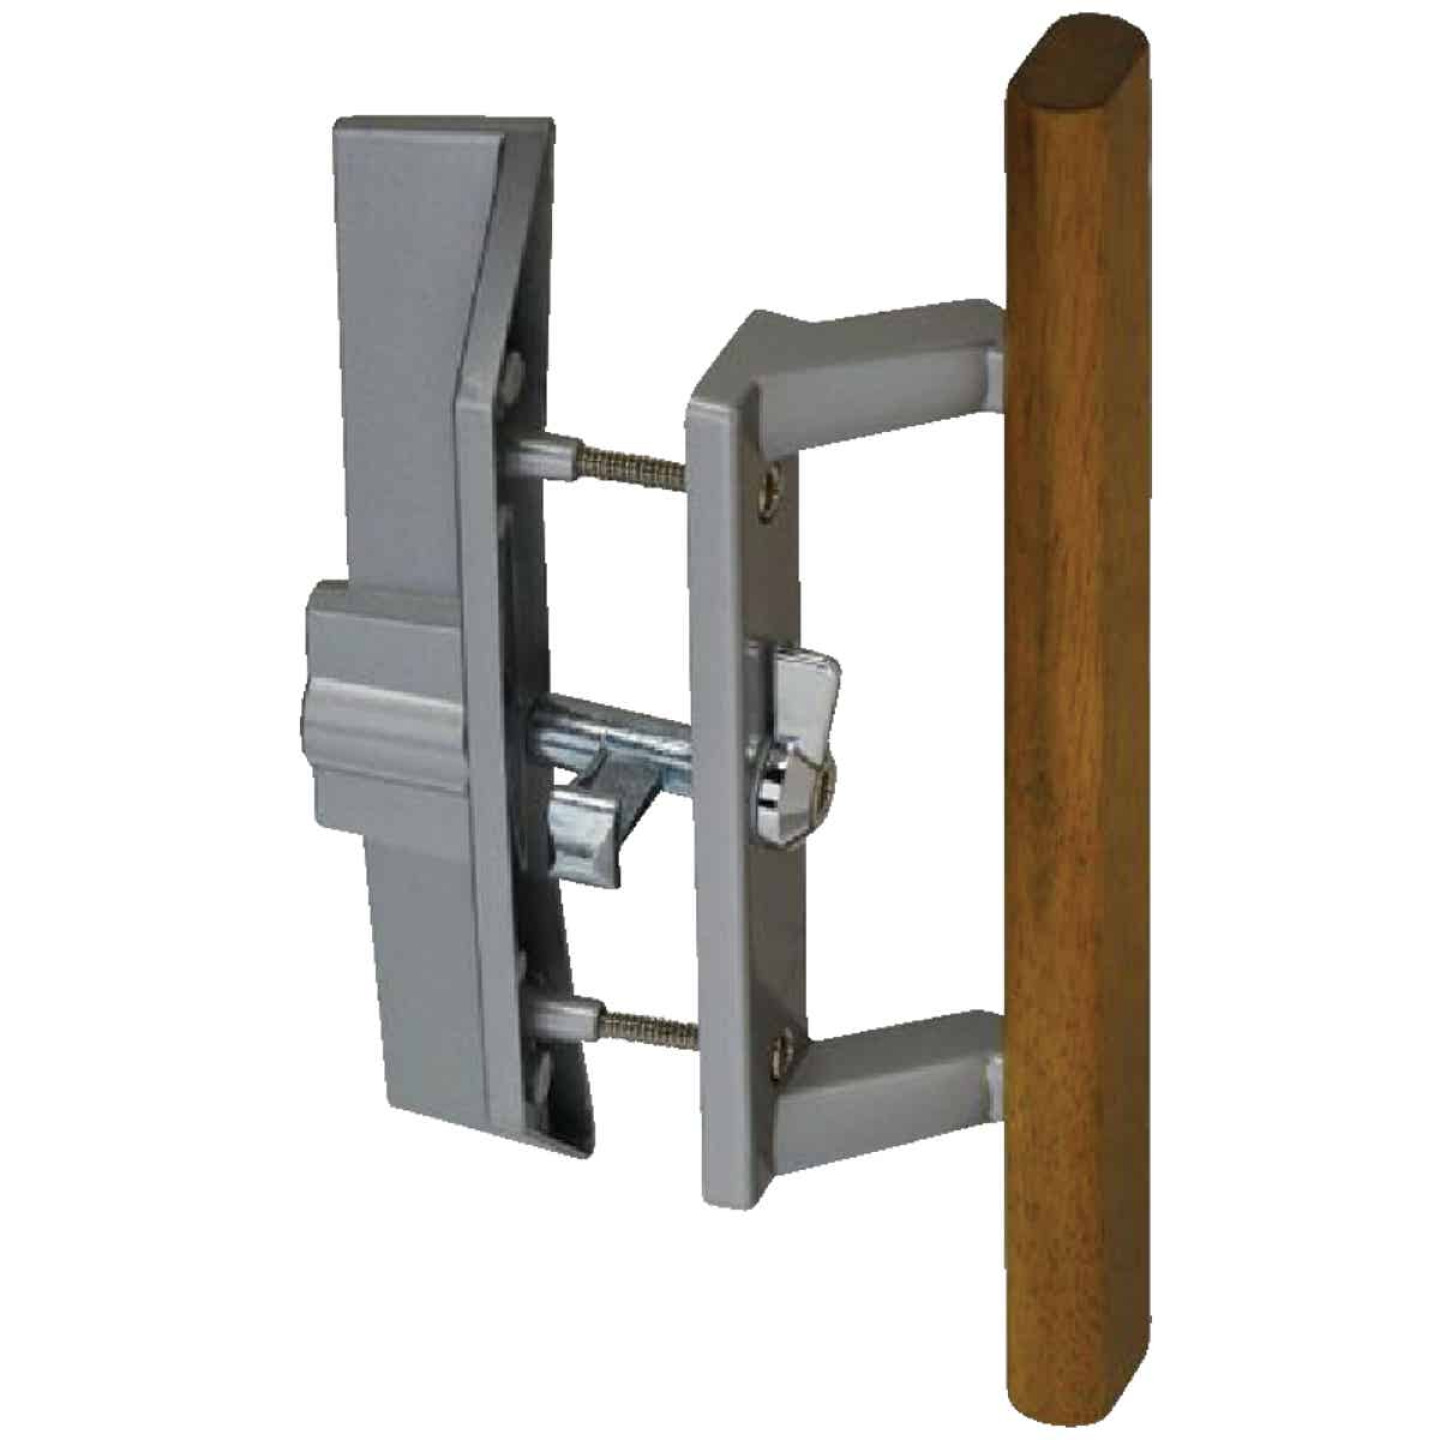 National Patio Door Hardware with Key Locking Unit Image 1